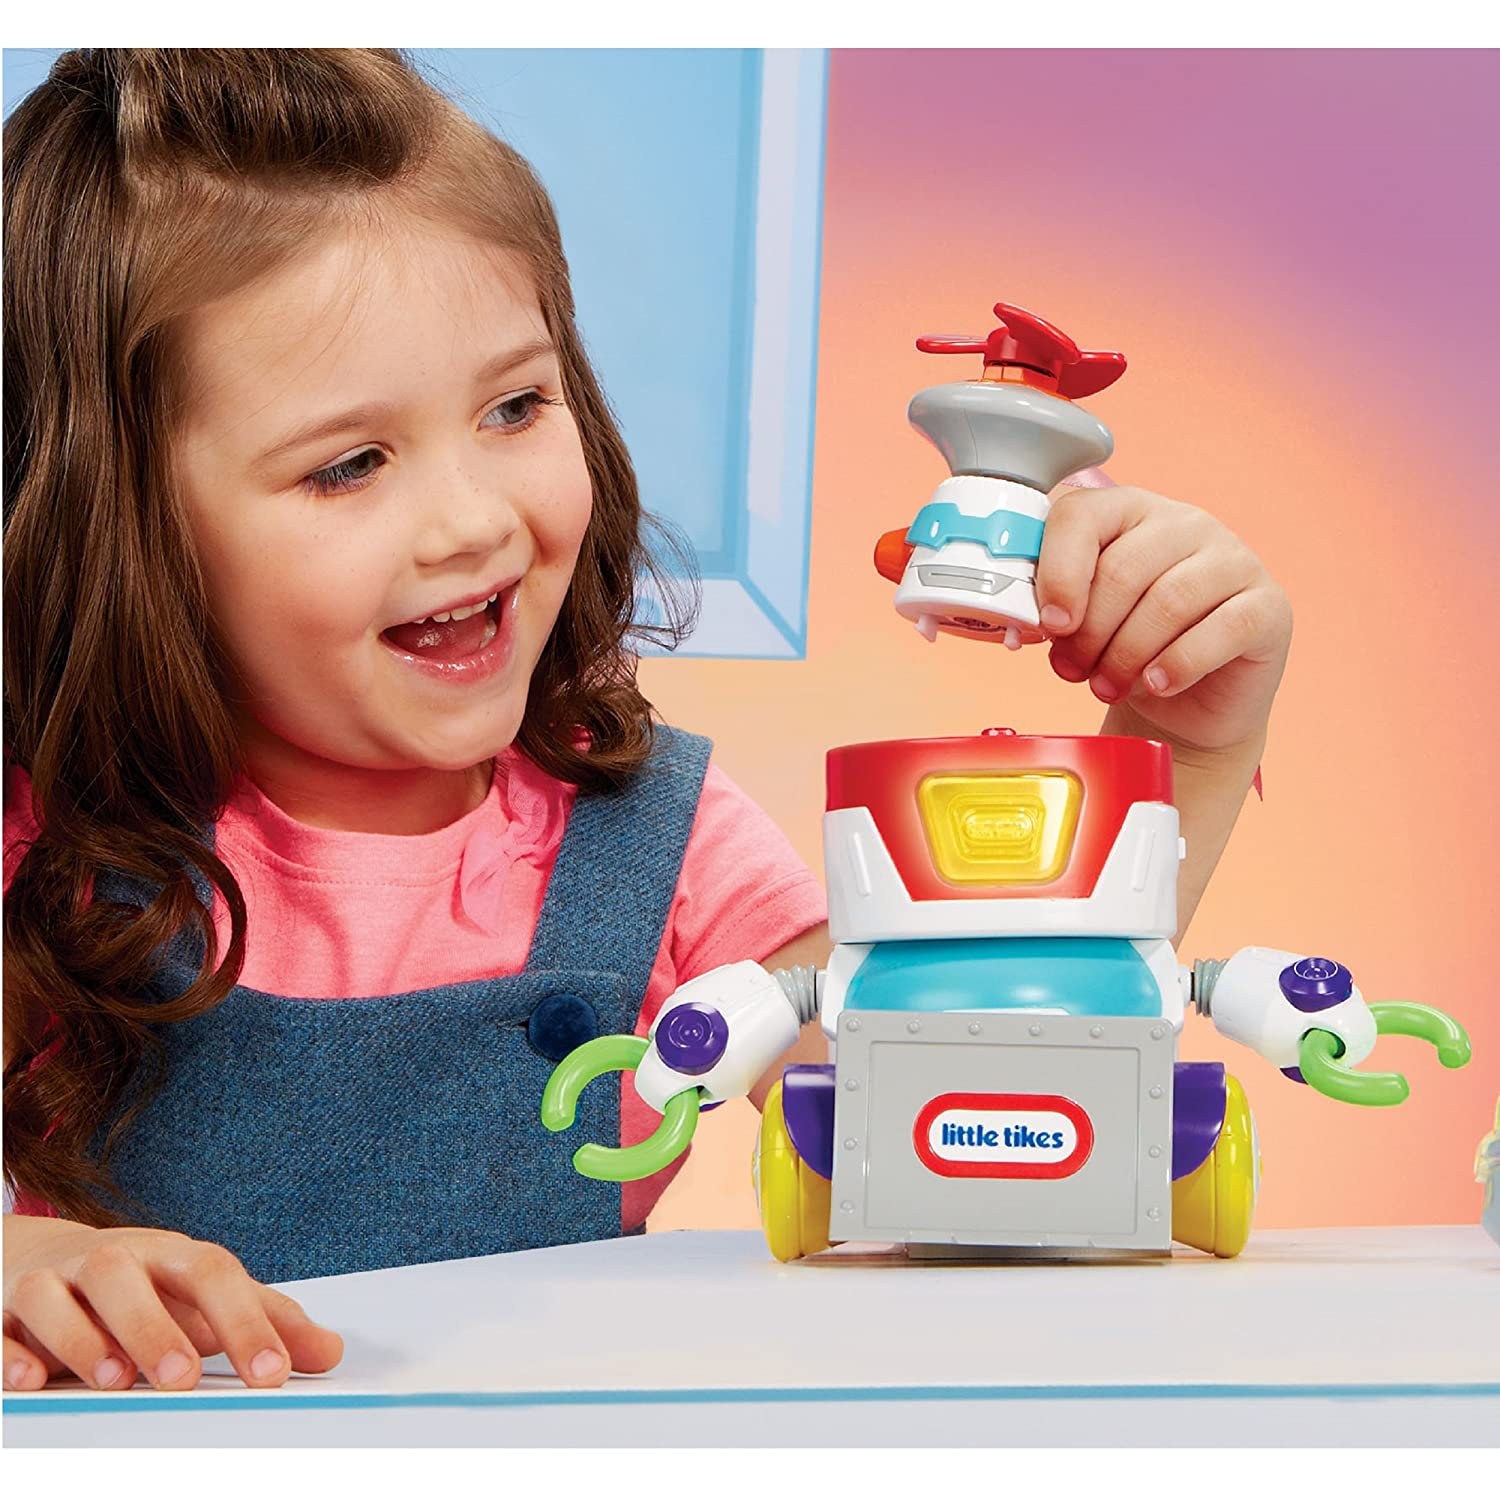 Little Tikes Builder Bot Toy